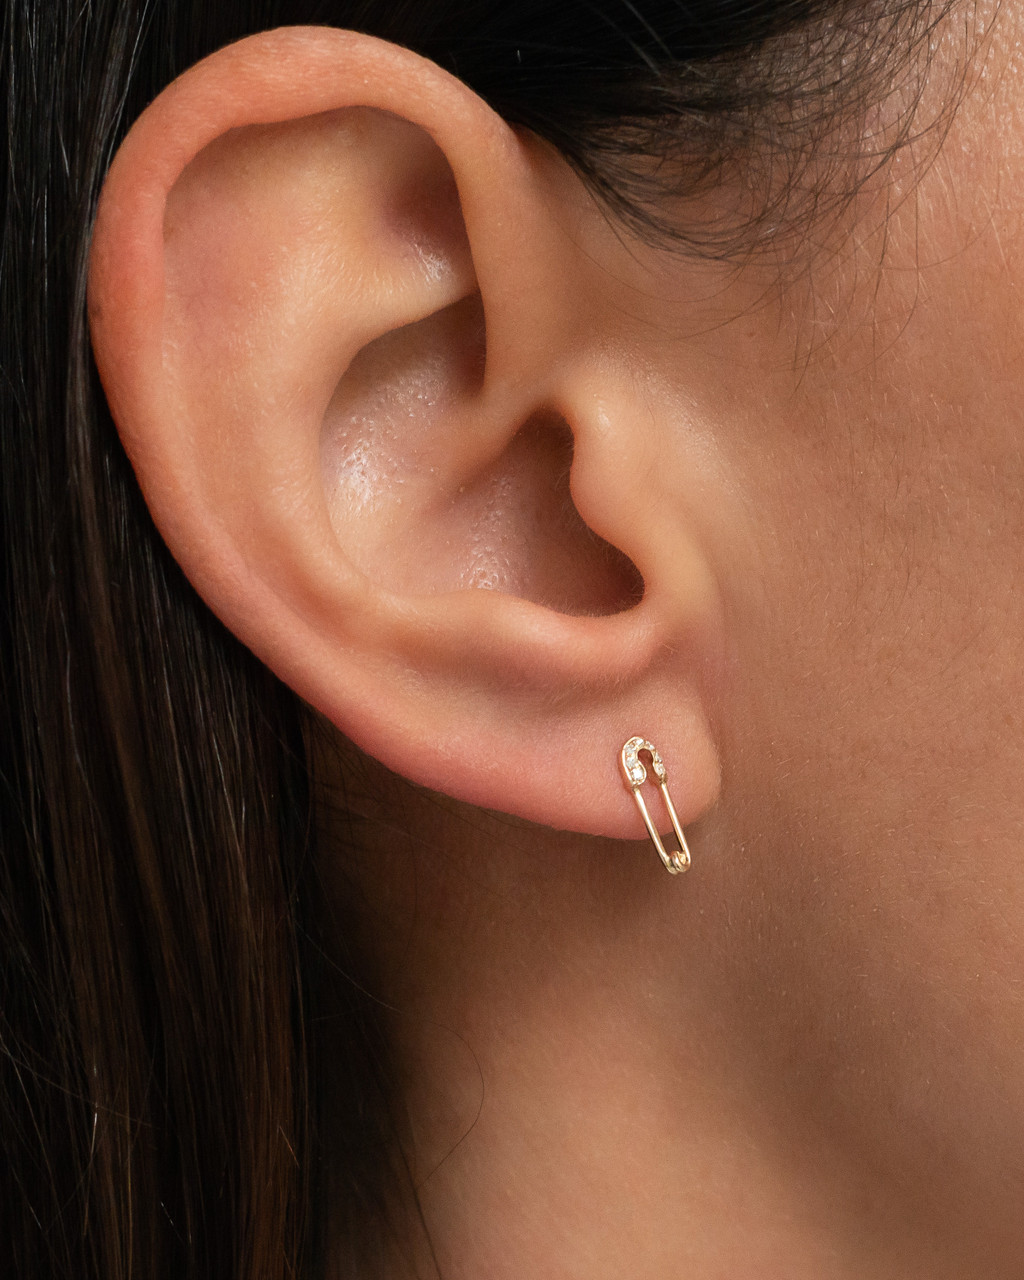 14k Gold Small Diamond Safety Pin Stud Earrings